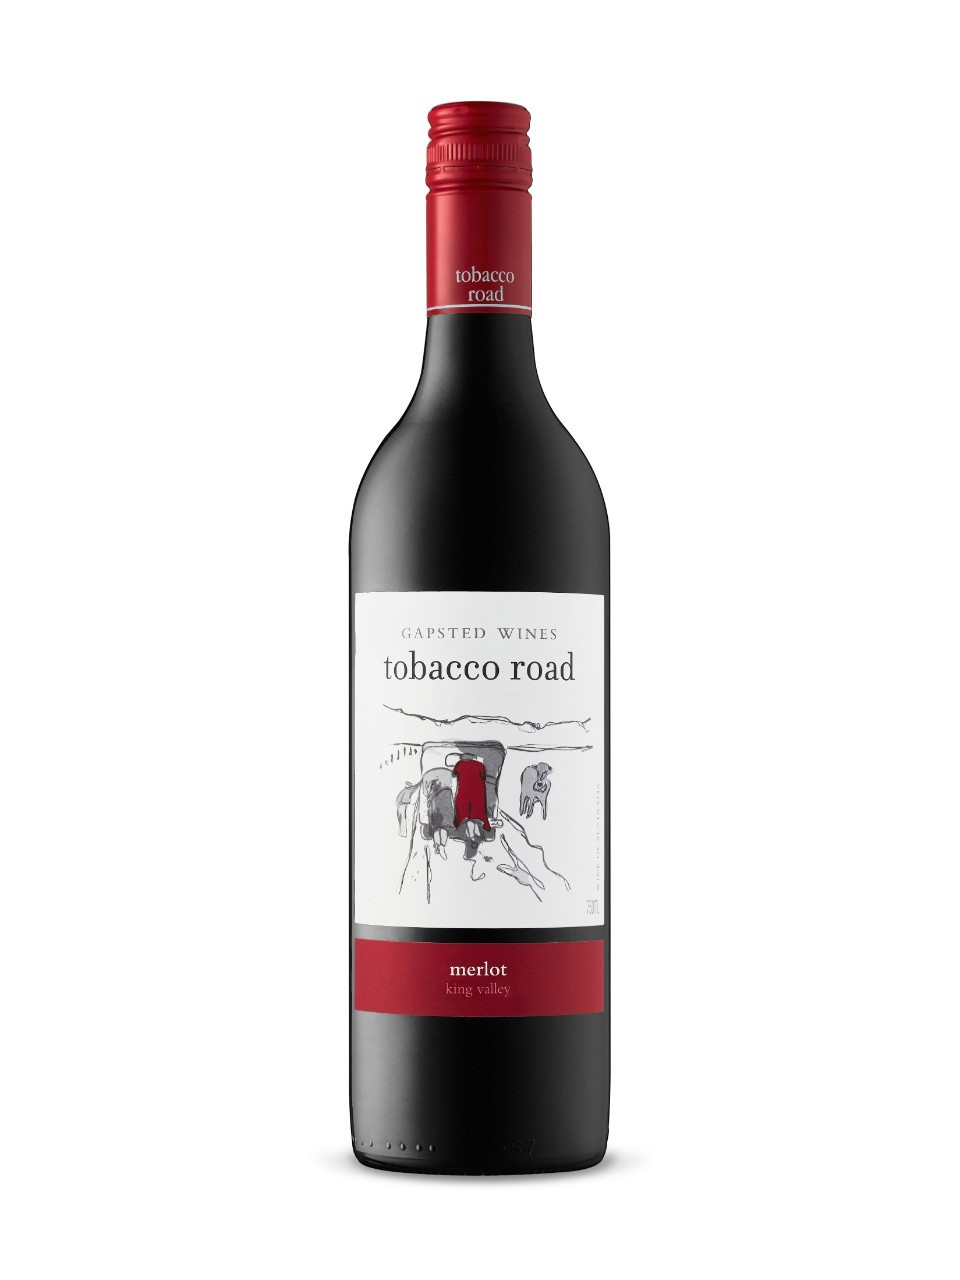 Tobacco Road Merlot 2013 from LCBO